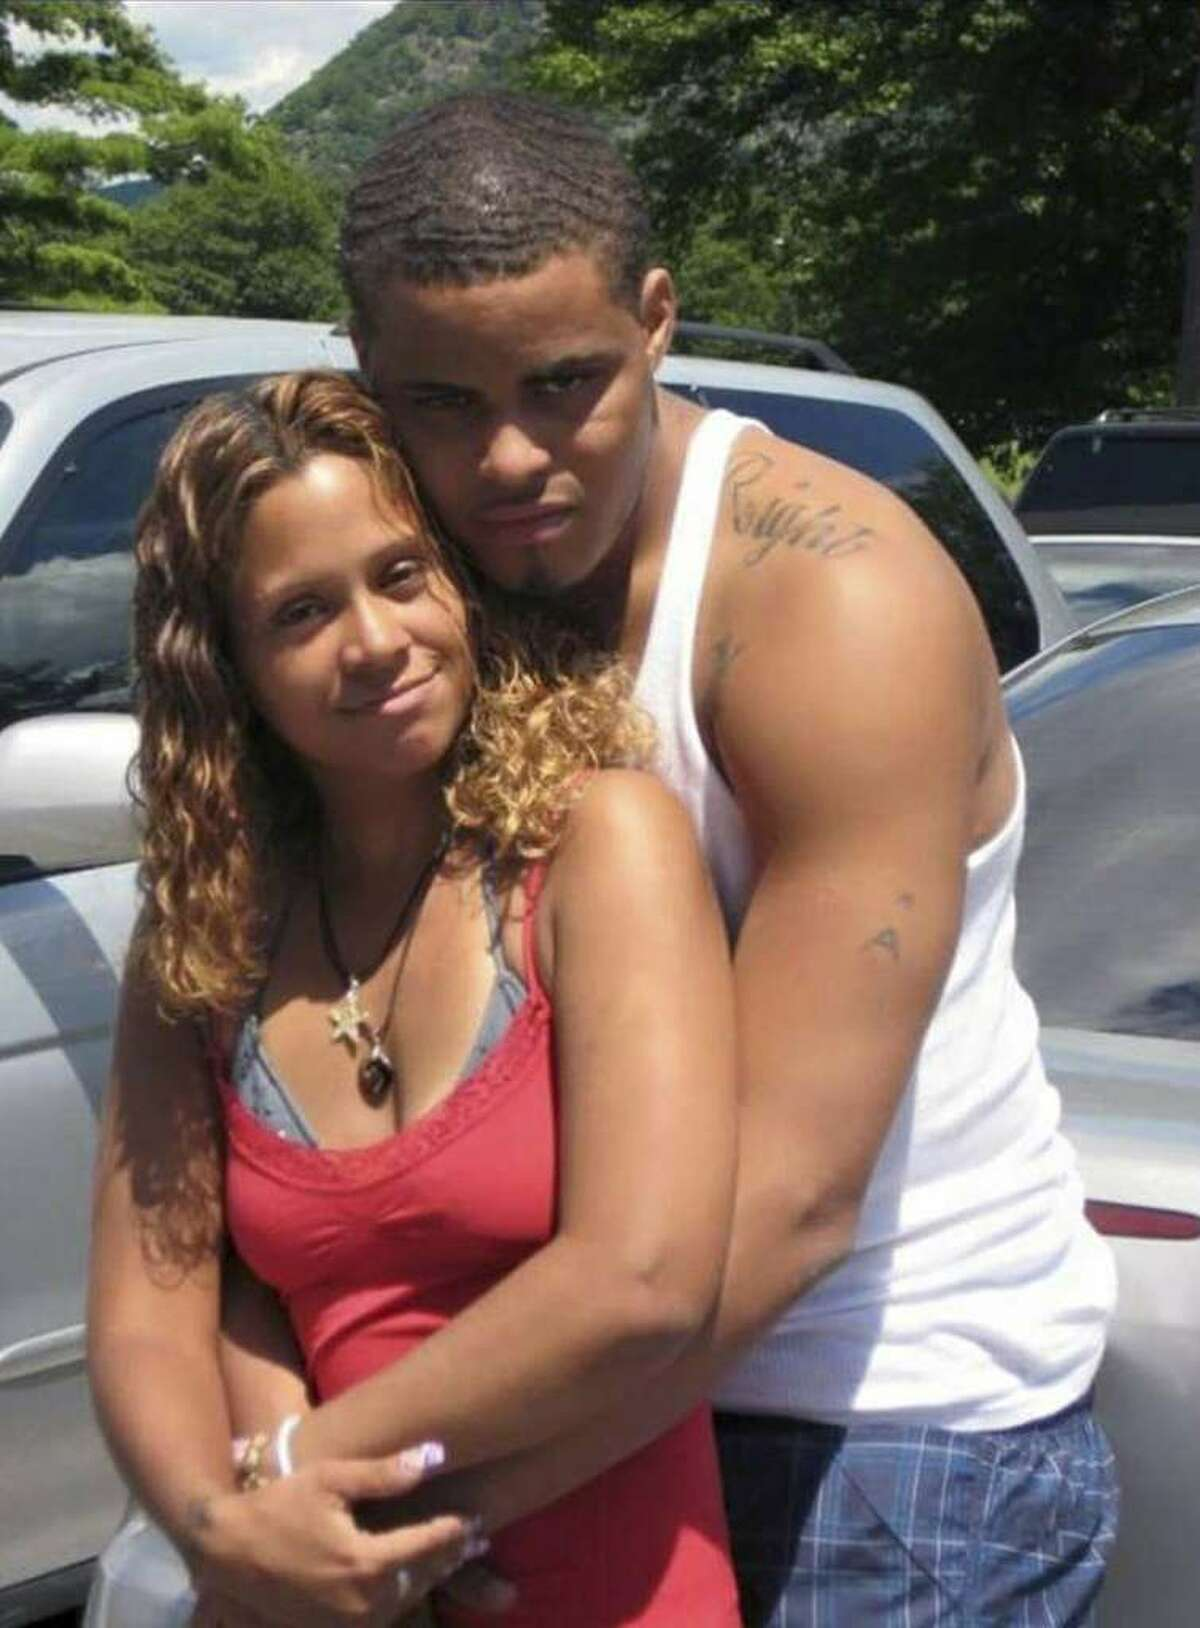 In this undated photo provided by Angelique Negroni-Kearse, Negroni-Kearse poses for a photo with her husband, Andrew Kearse. Andrew Kearse died on May 11, 2017 after leading Schenectady police on a foot chase when stopped for a traffic violation. He complained of dizziness and difficulty breathing before losing consciousness while in police custody. (Angelique Negroni-Kearse family photo via AP)